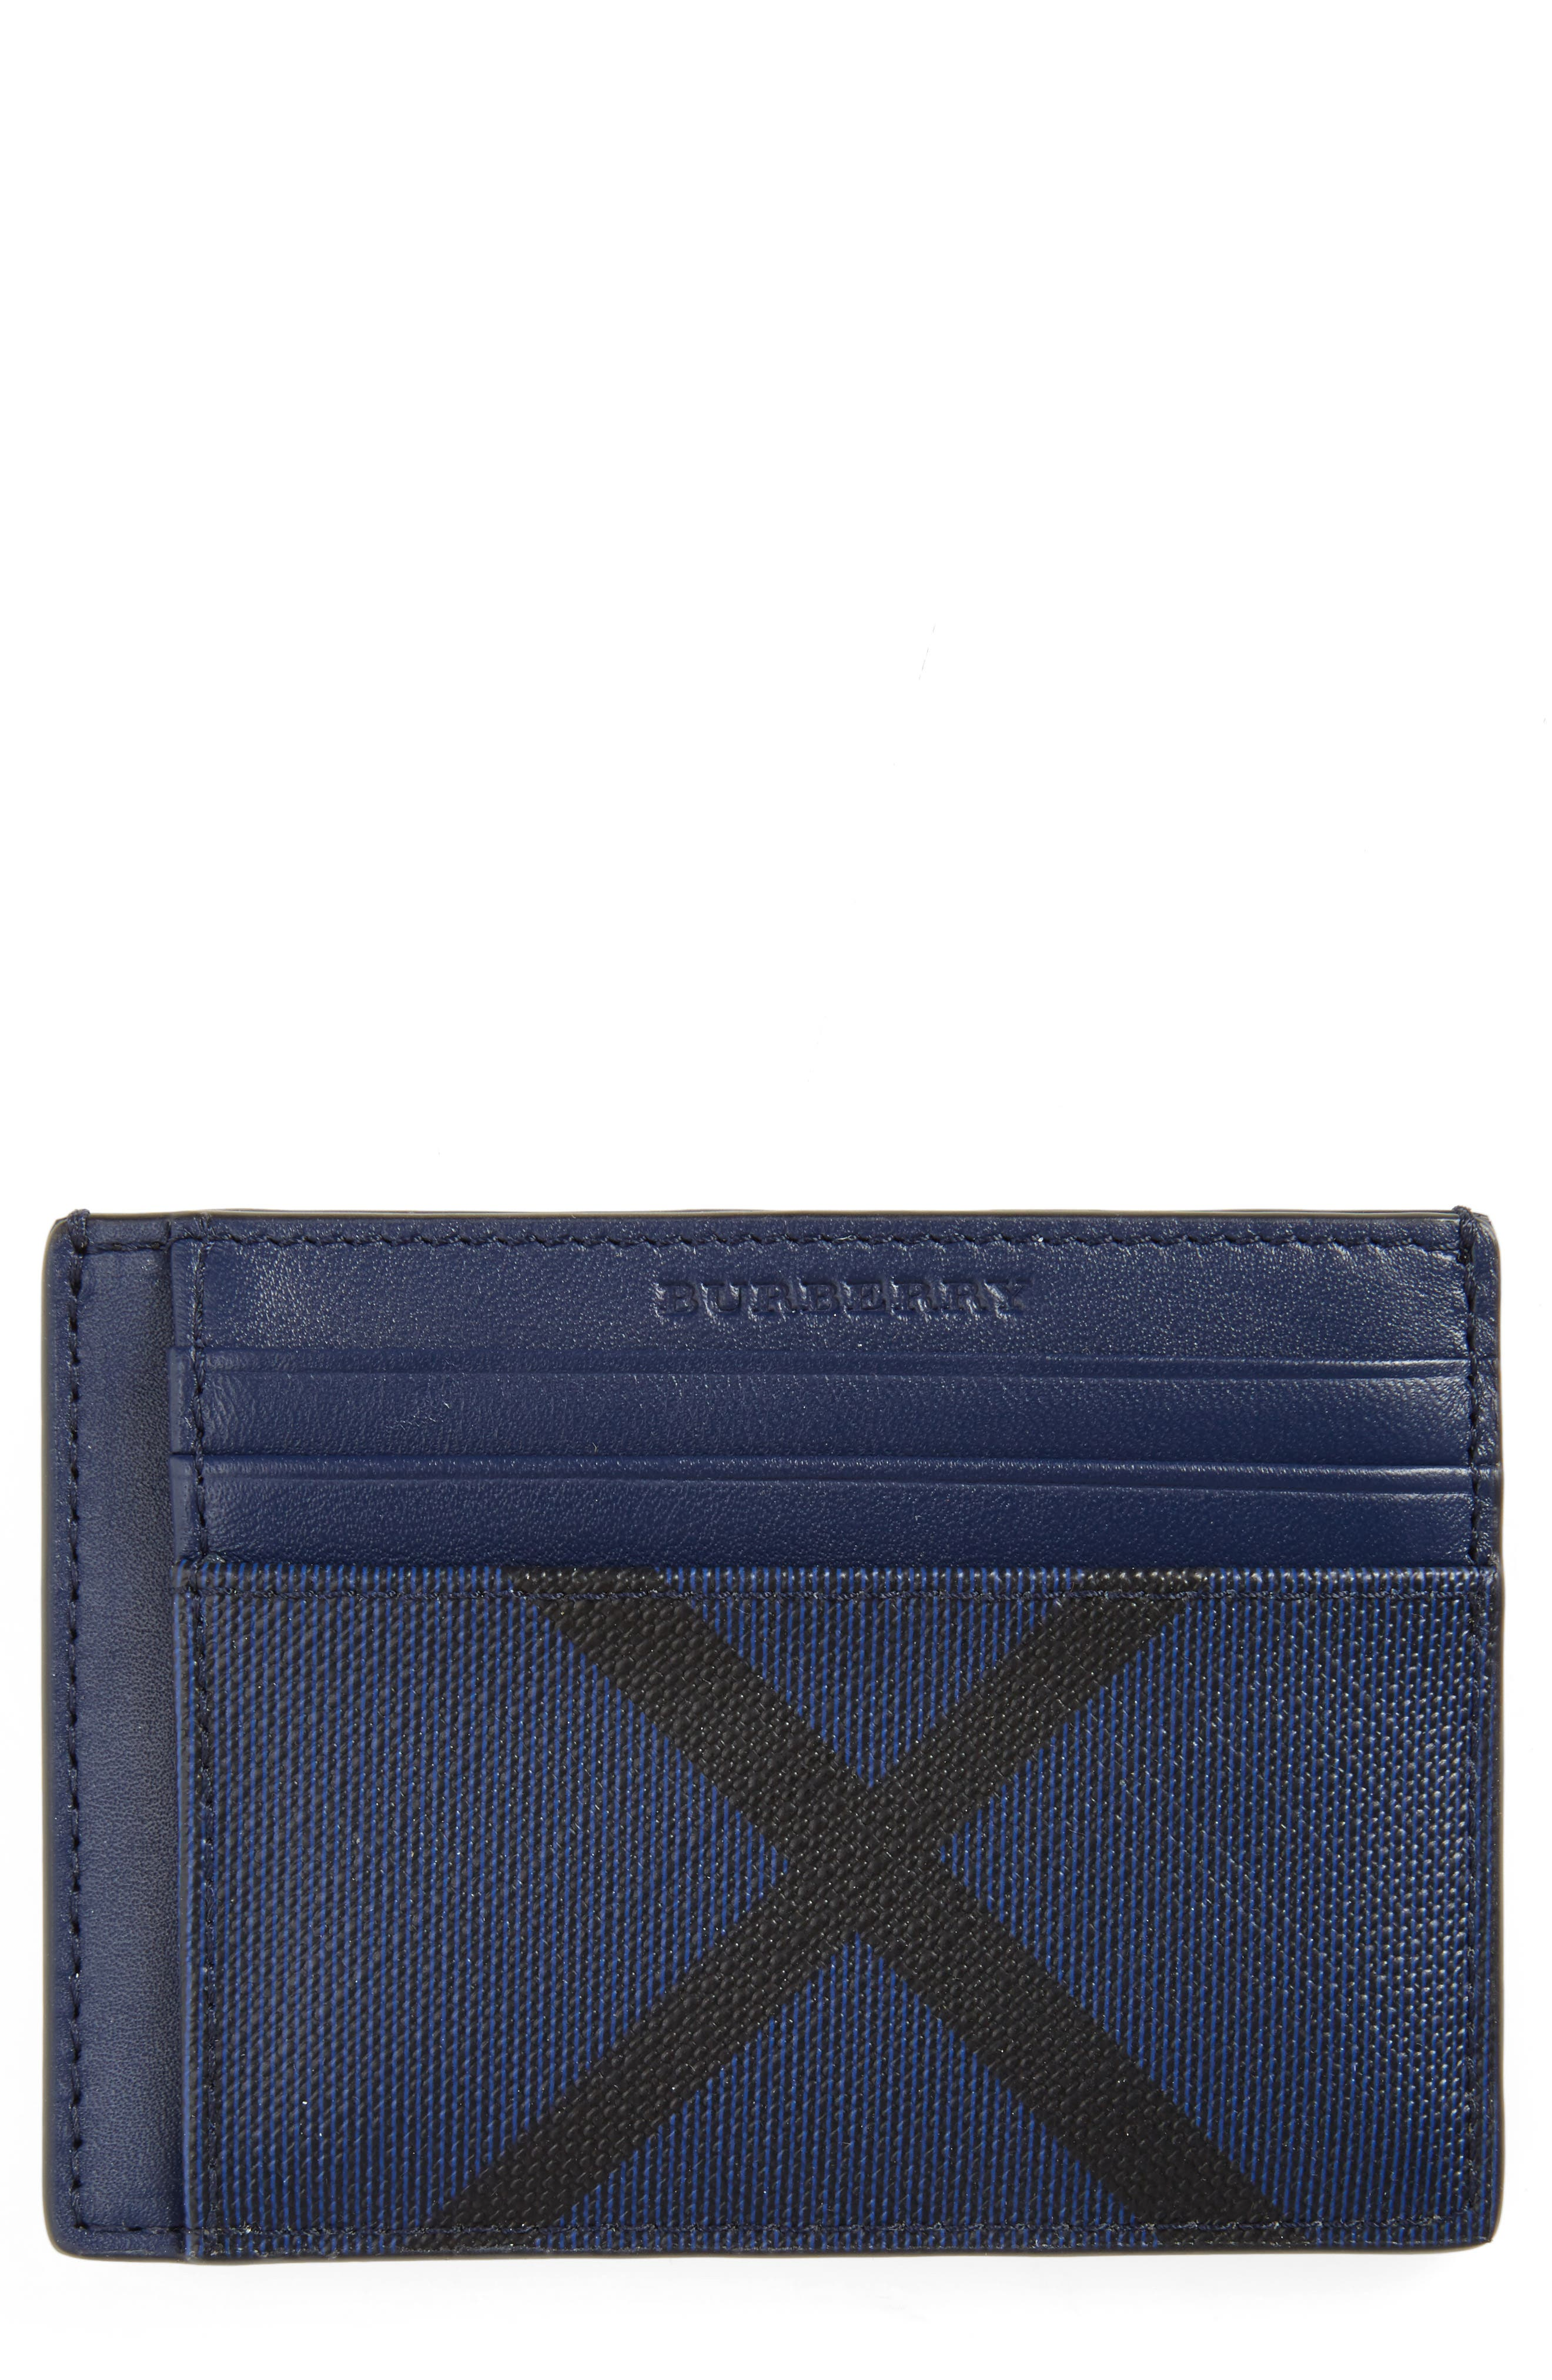 Burberry 'Bernie' Money Clip Card Case